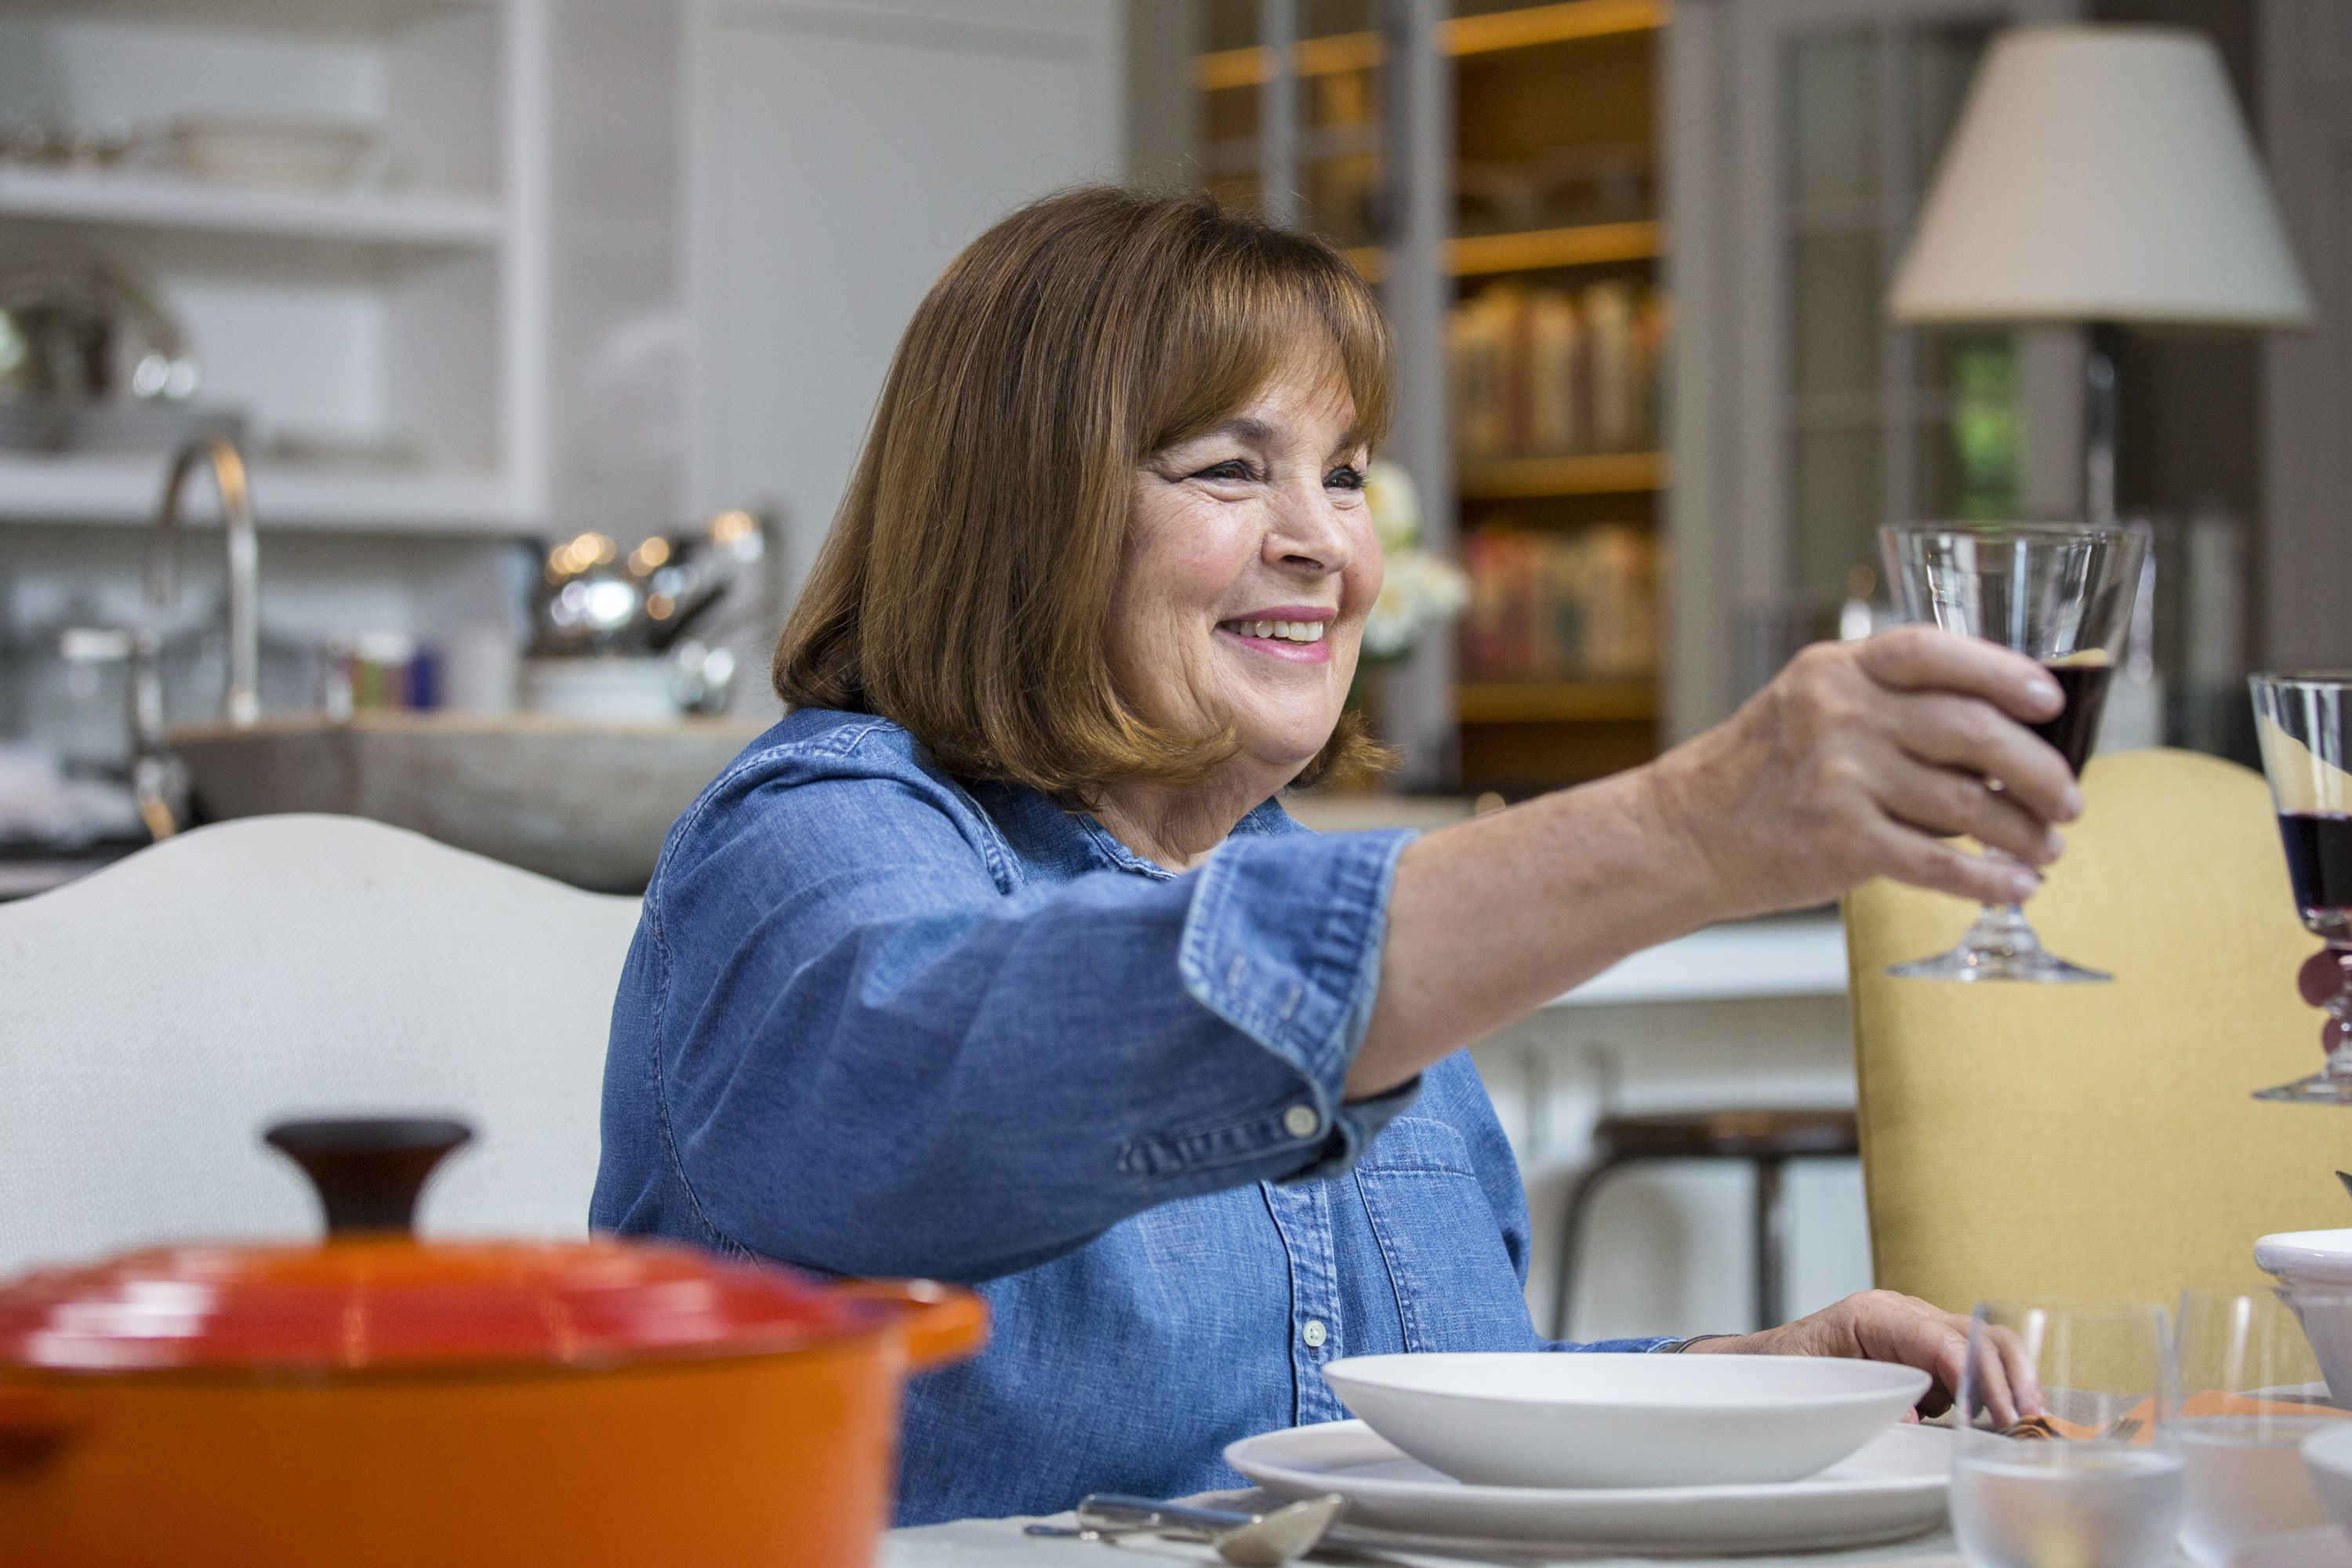 Ina Garten's Net Worth Is Seriously Impressive